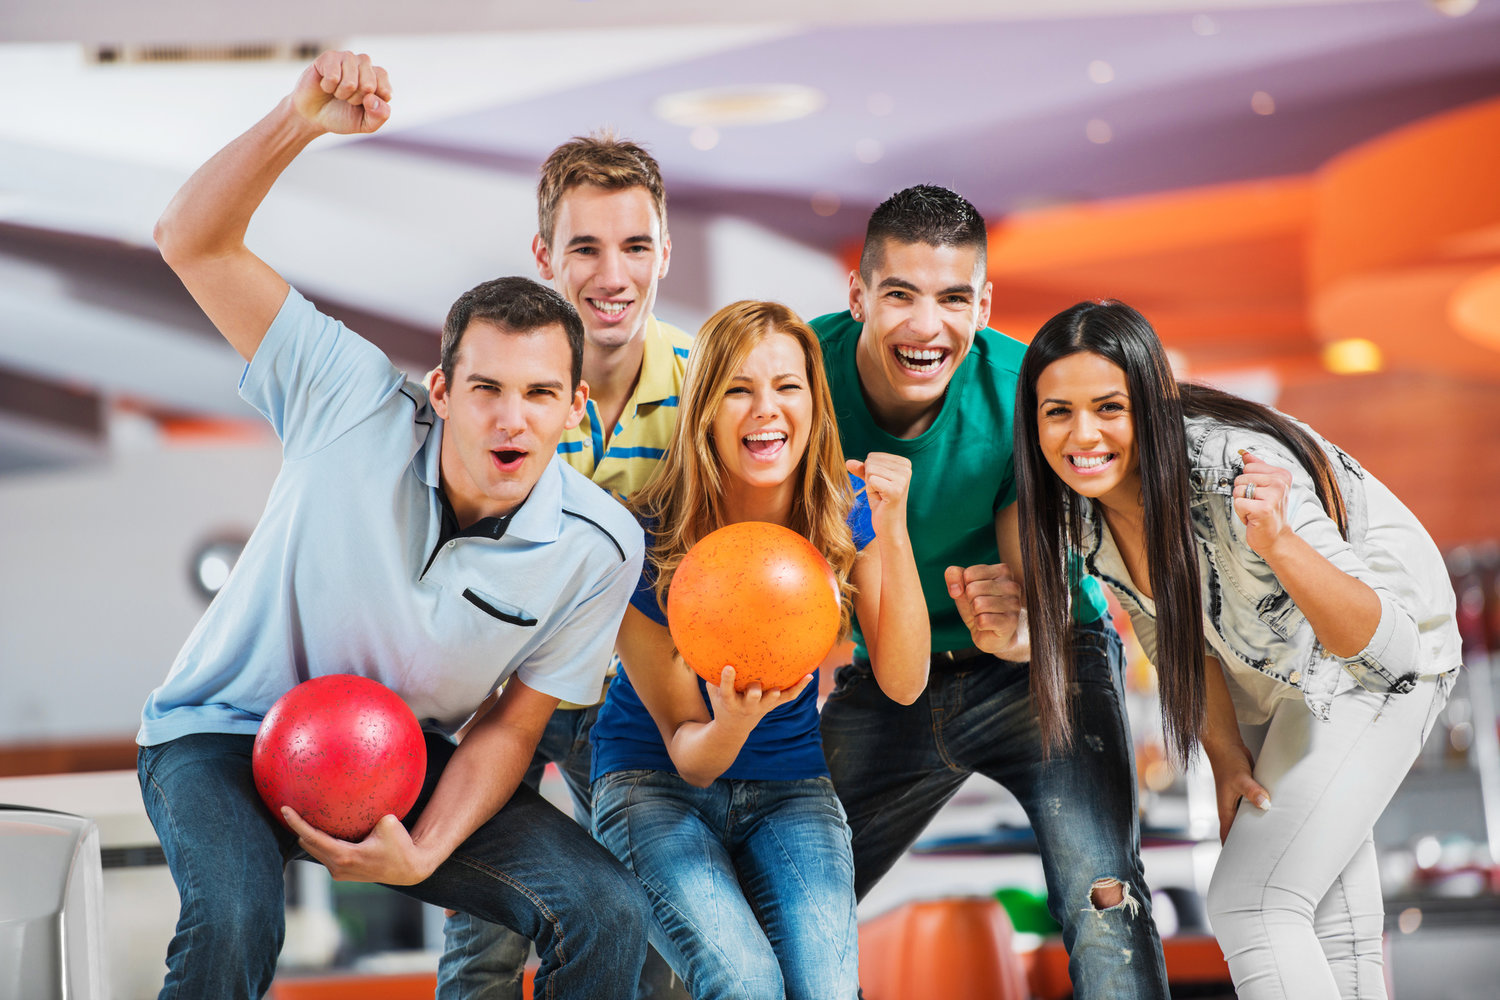 Group of friends bowling together